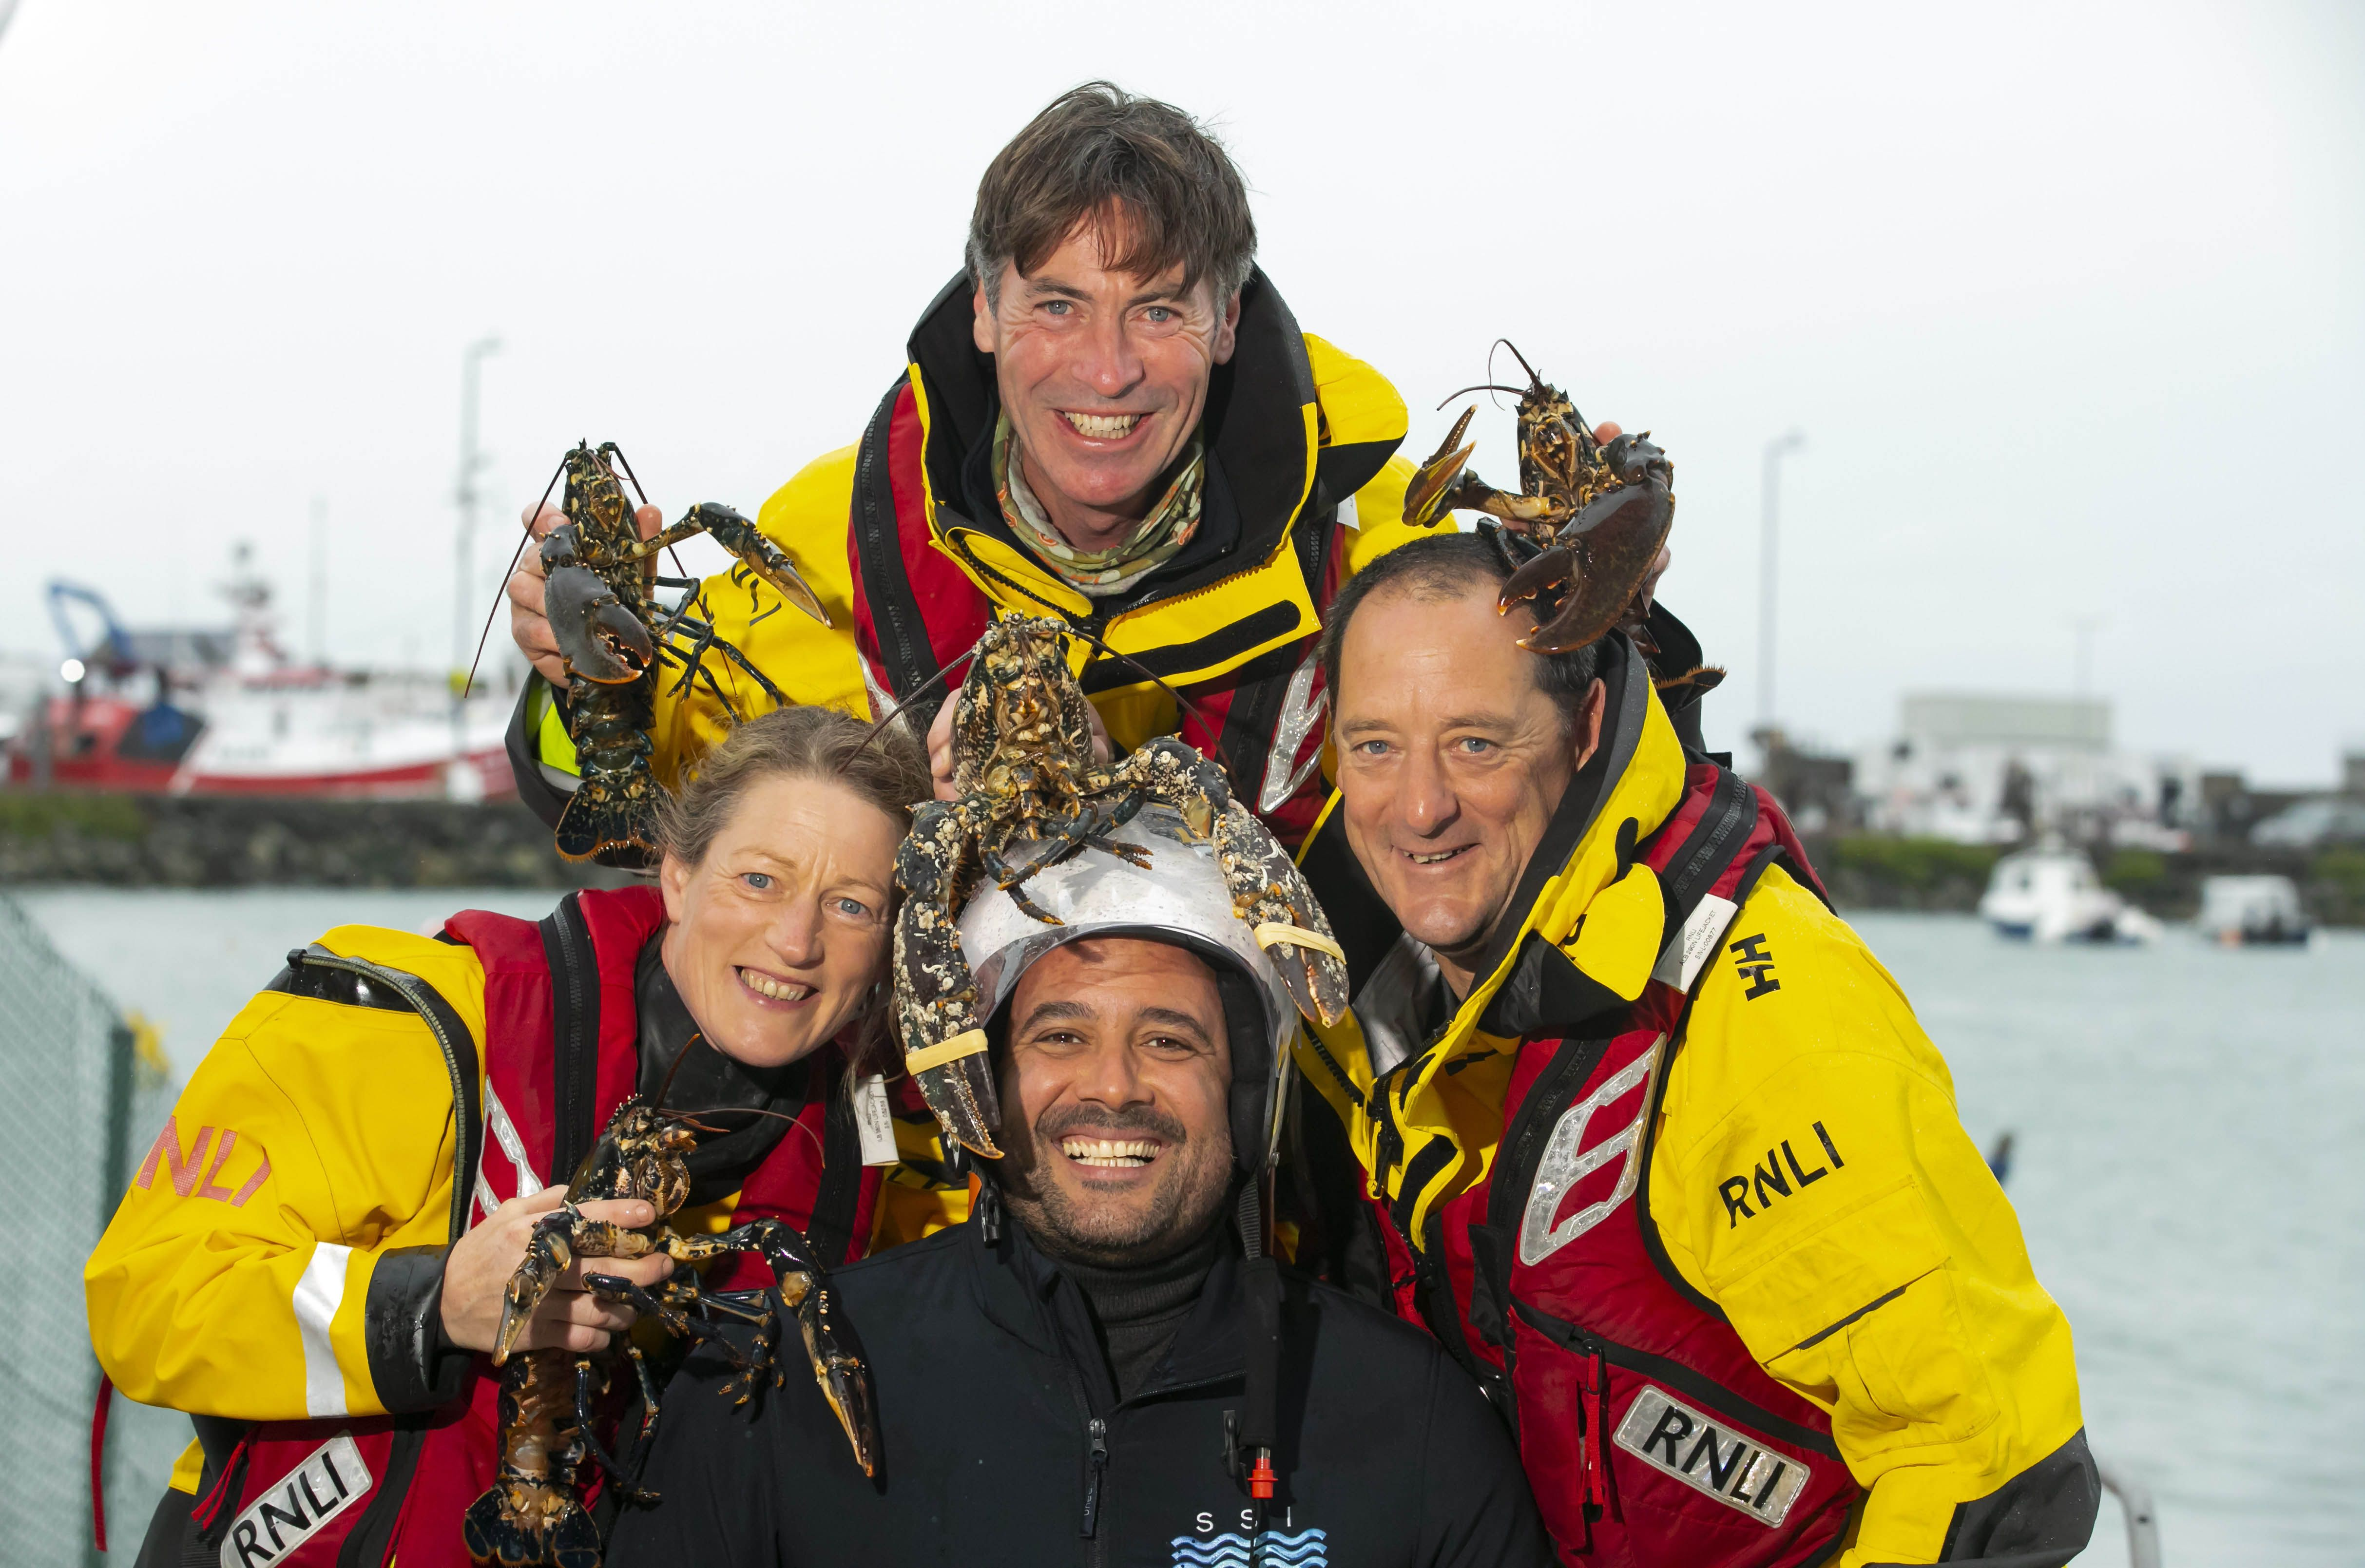 Niall Sabongi with members of the RNLI search and rescue team.